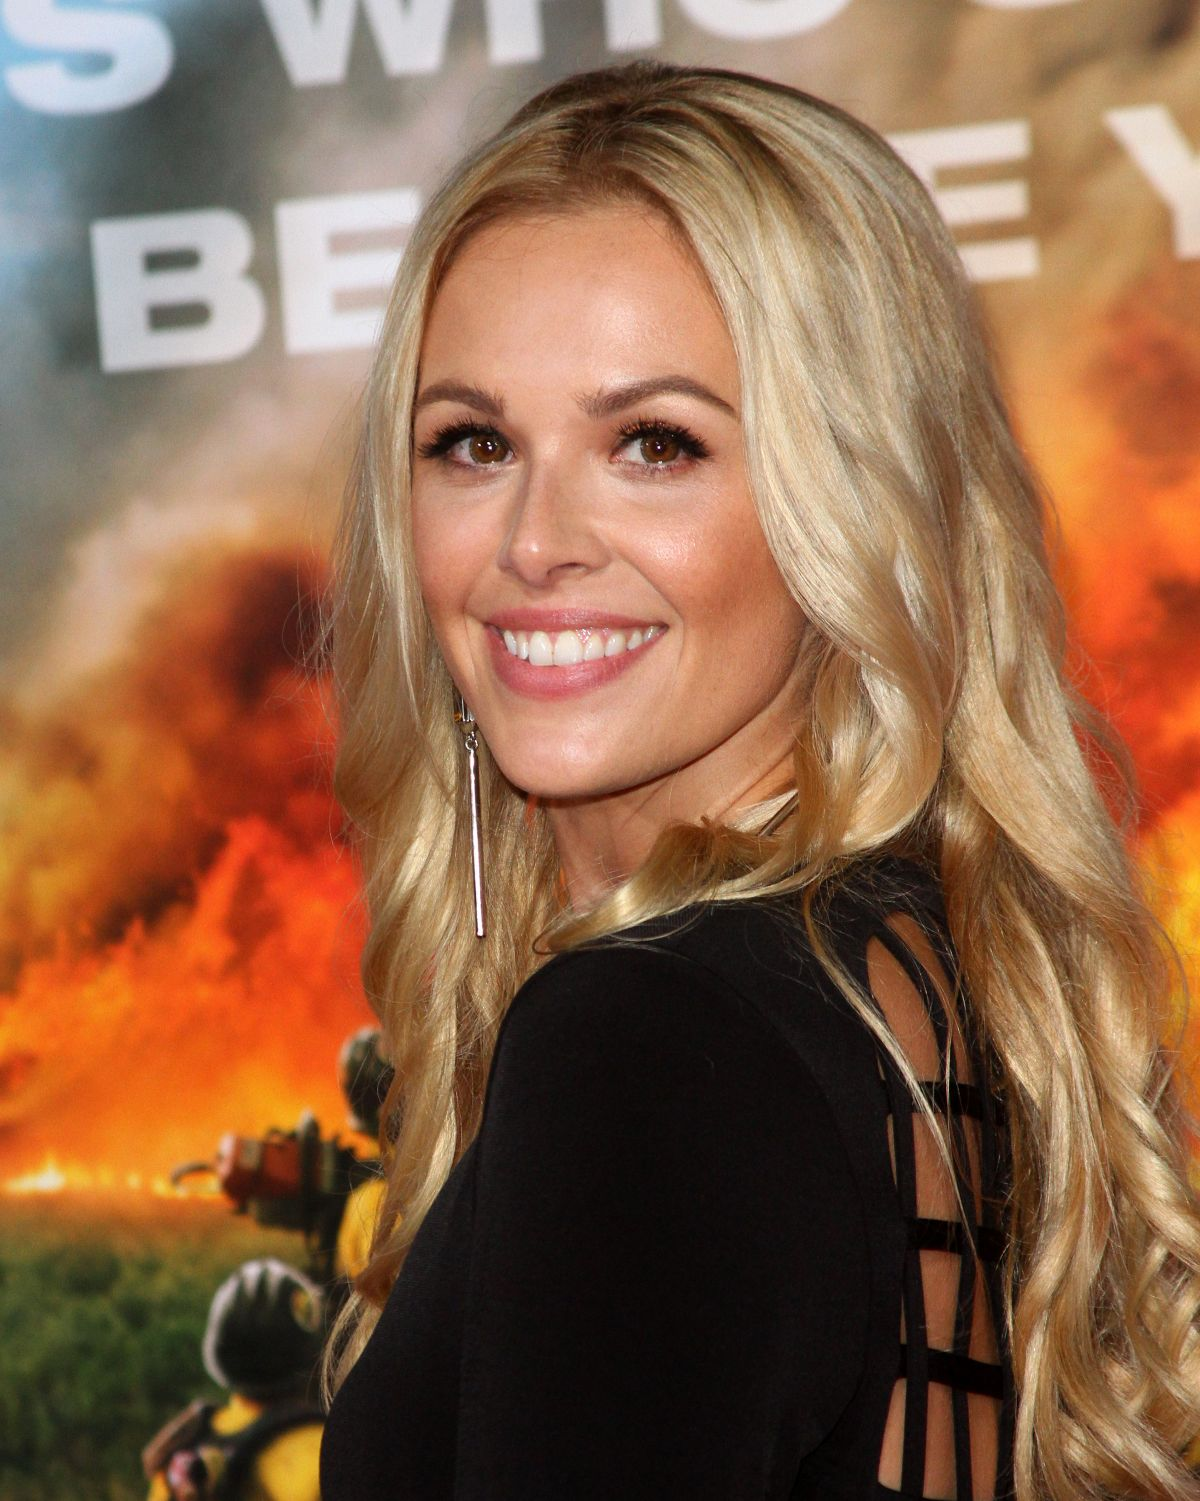 Natalie Hall At 'Only The Brave' film premiere, Los Angeles   natalie-hall-at-only-the-brave-film-premiere-los-angeles-13